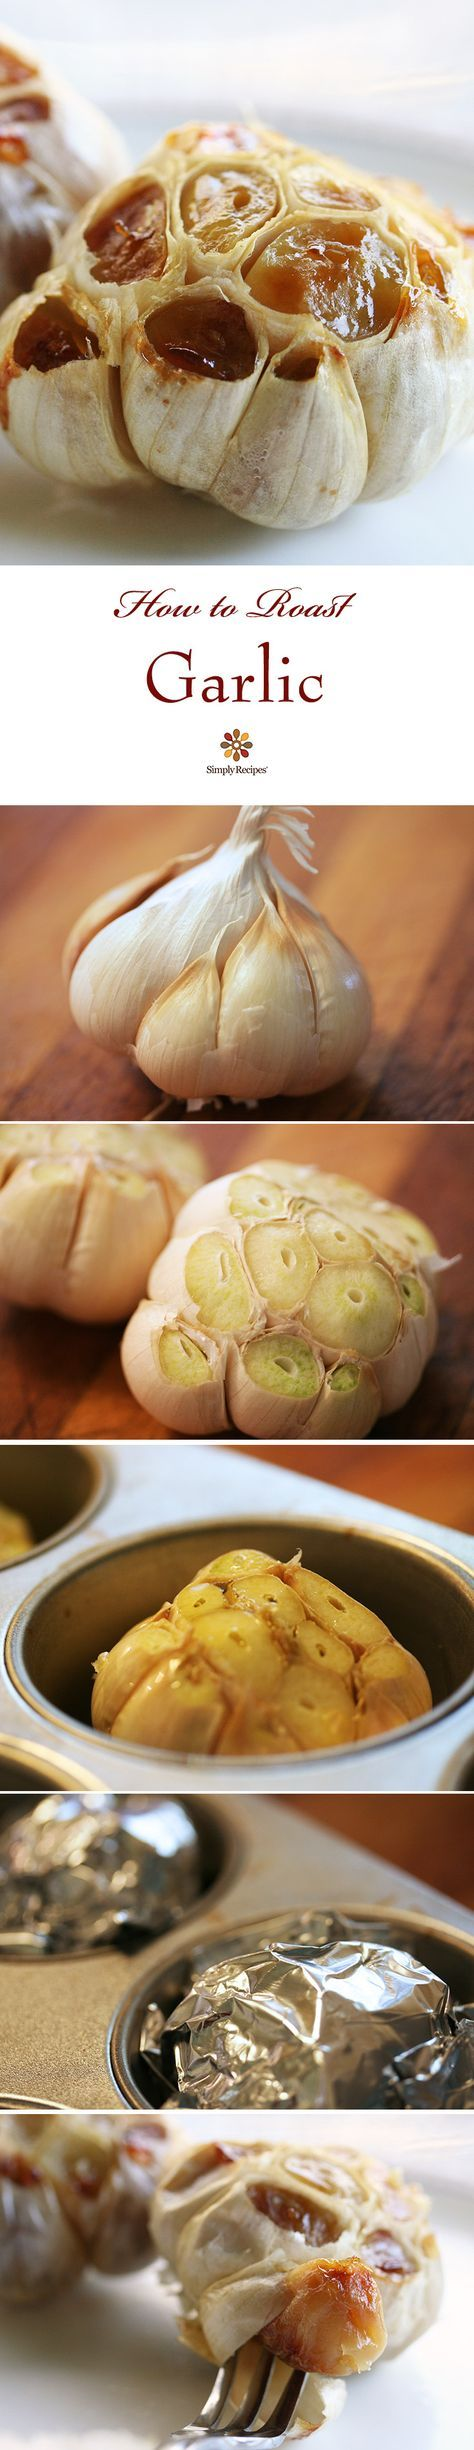 Roasted Garlic ~ How to roast whole heads of garlic in the oven so you can eat warm, toasty cloves right out of the garlic head!